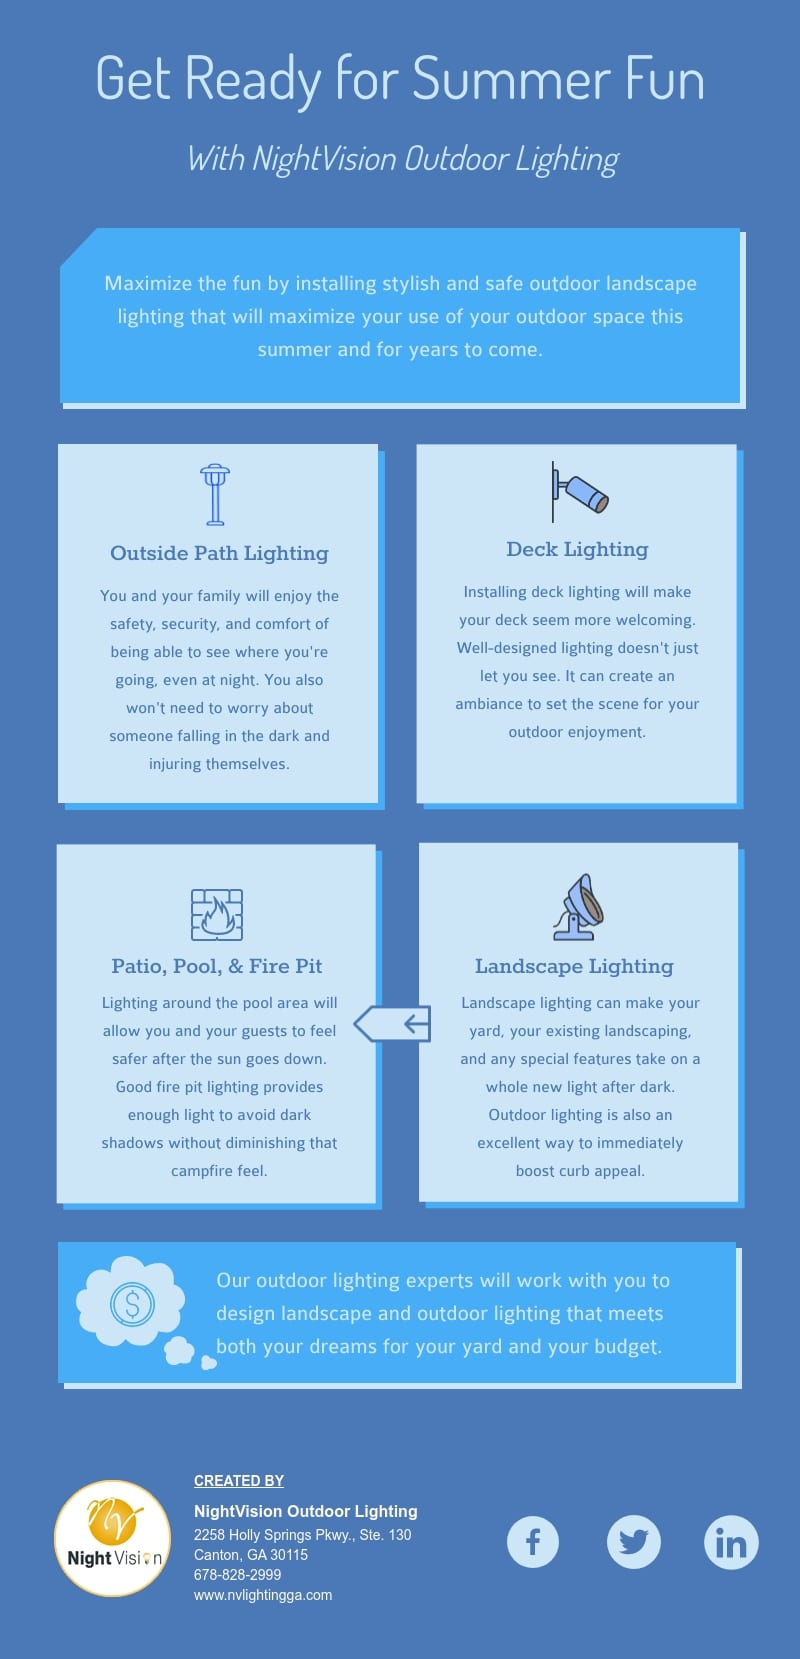 Get Ready for Summer Fun with NightVision Outdoor Lighting [infographic]